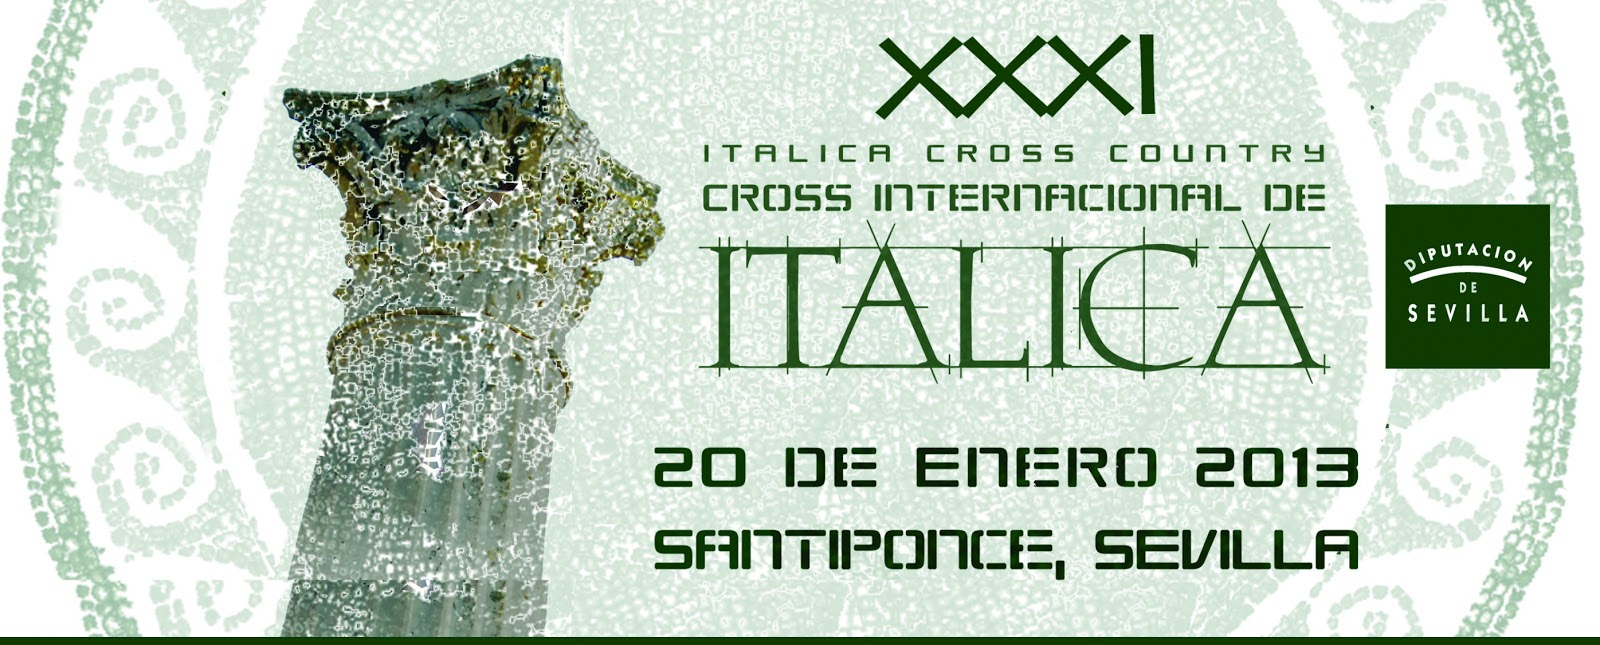 Cross_Italica_2013_faldon